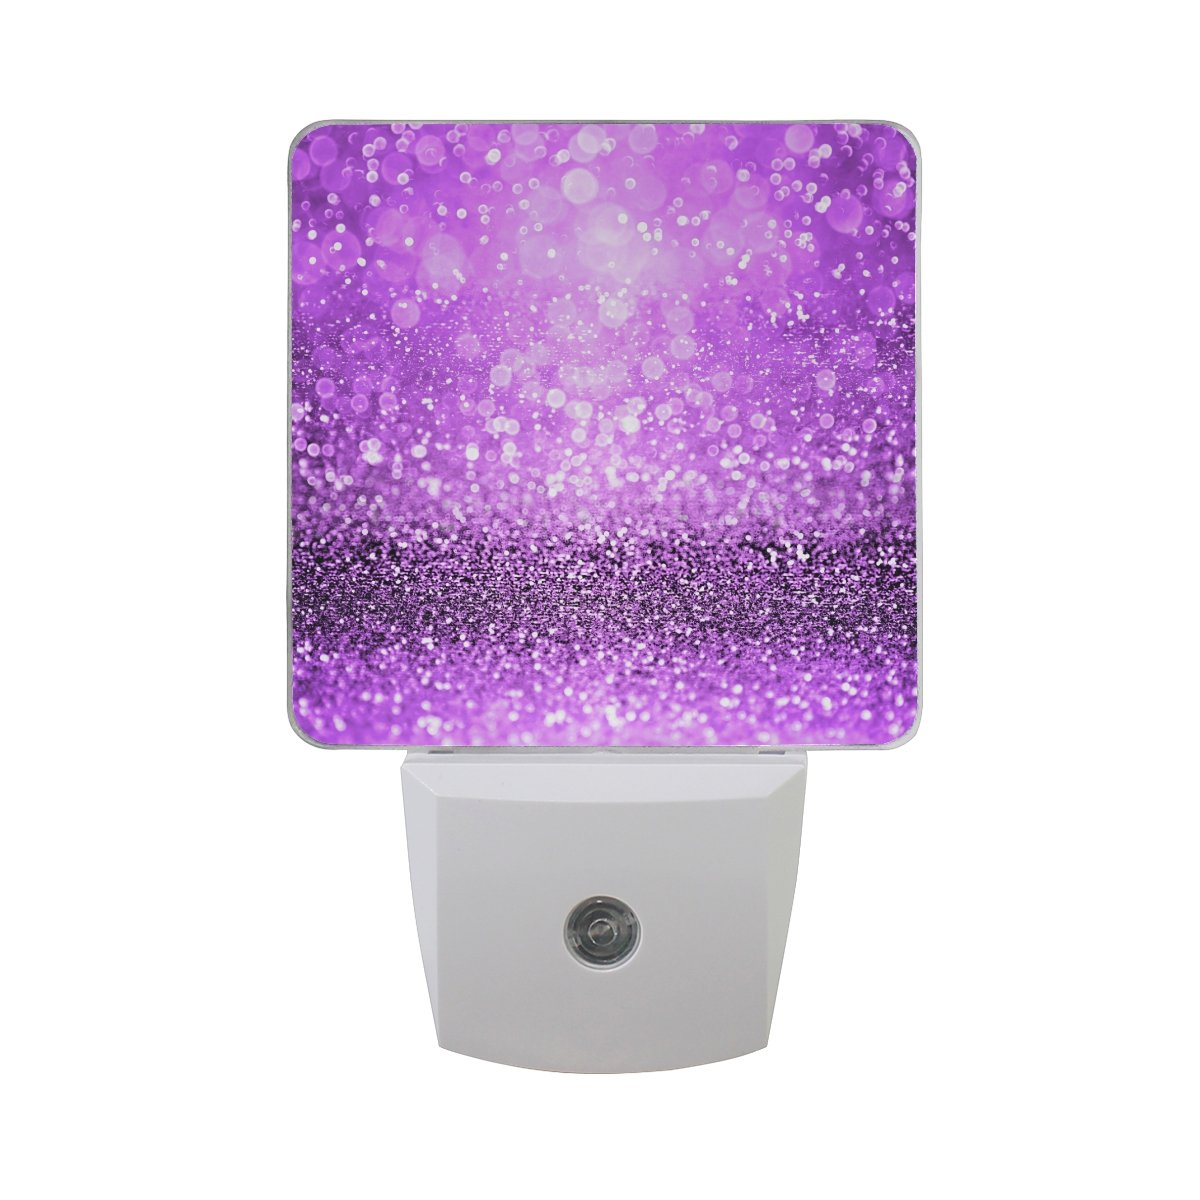 Naanle Set of 2 Modern Sparkling Purple Glitter Sparkle Girly Spooky Halloween Magic Royal Princess Girl Dance Theme Design Auto Sensor LED Dusk To Dawn Night Light Plug In Indoor for Adults